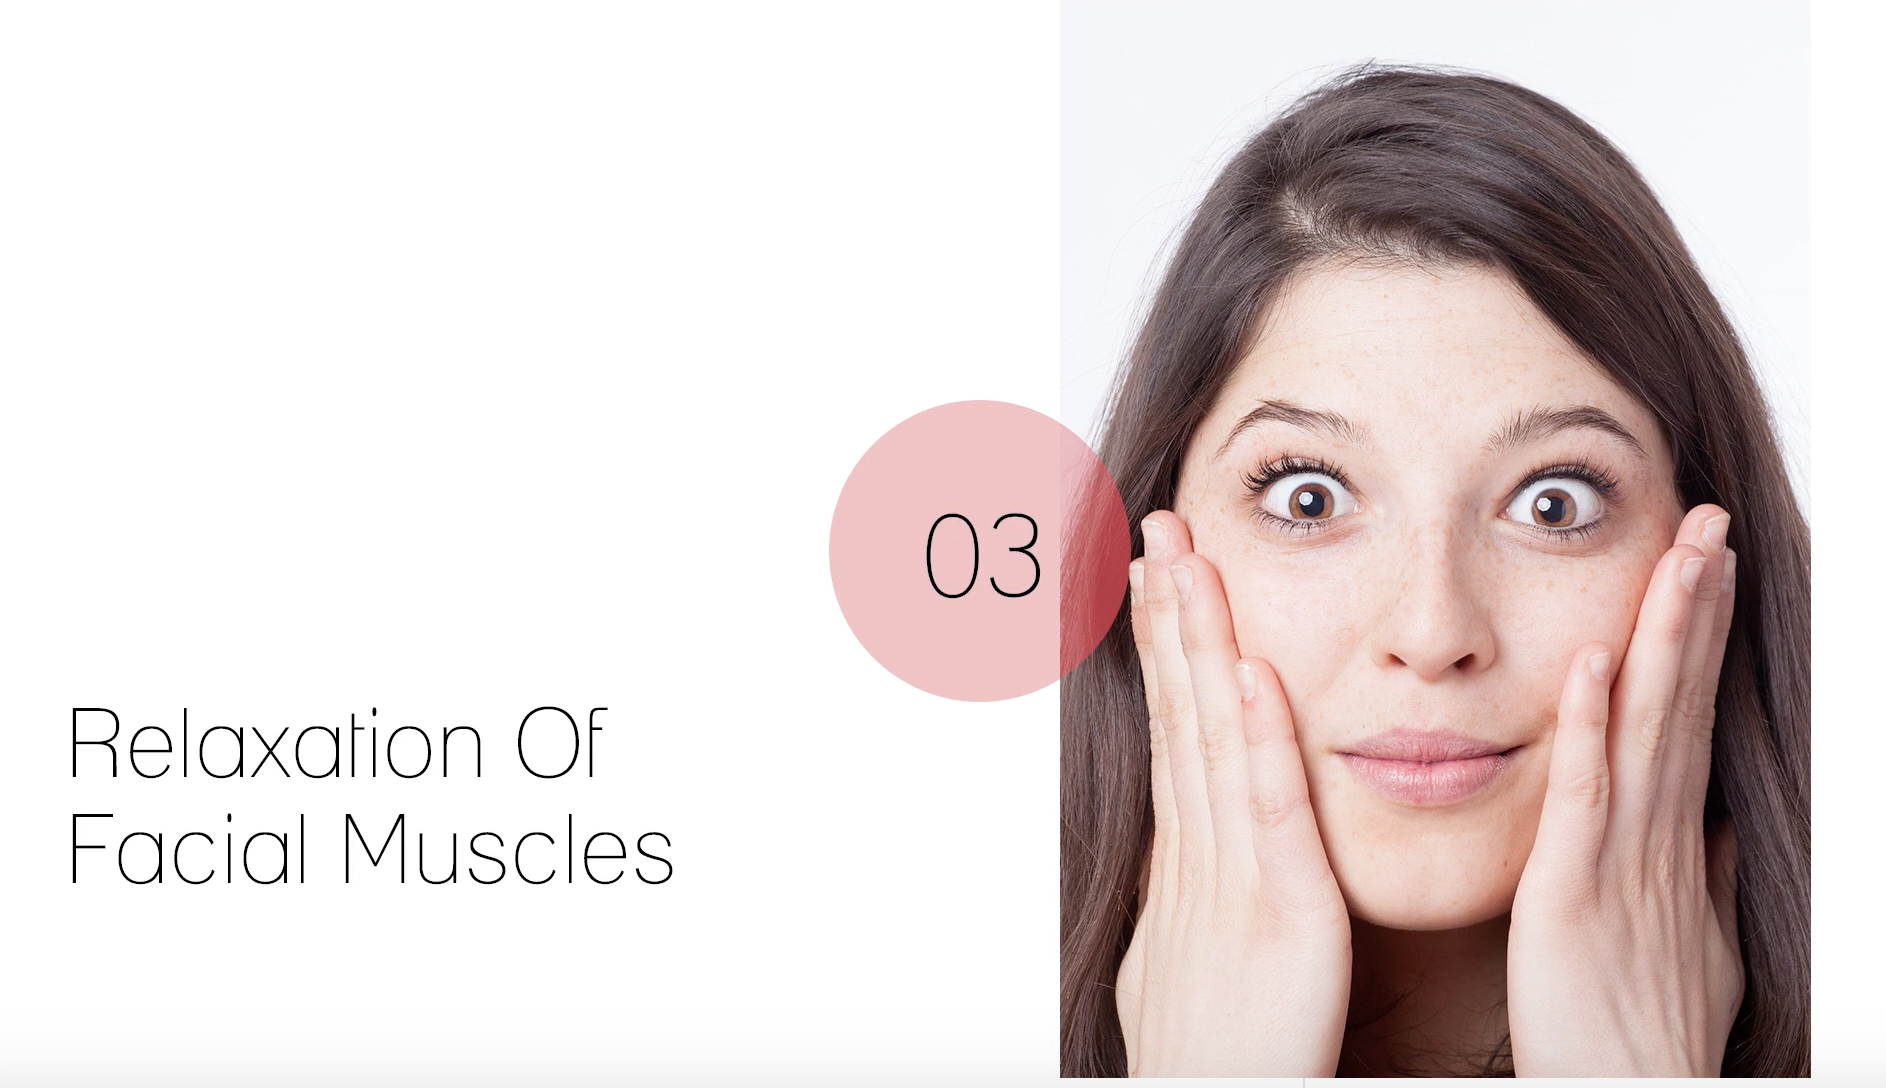 Relaxation of Facial Muscles- Shine on Me